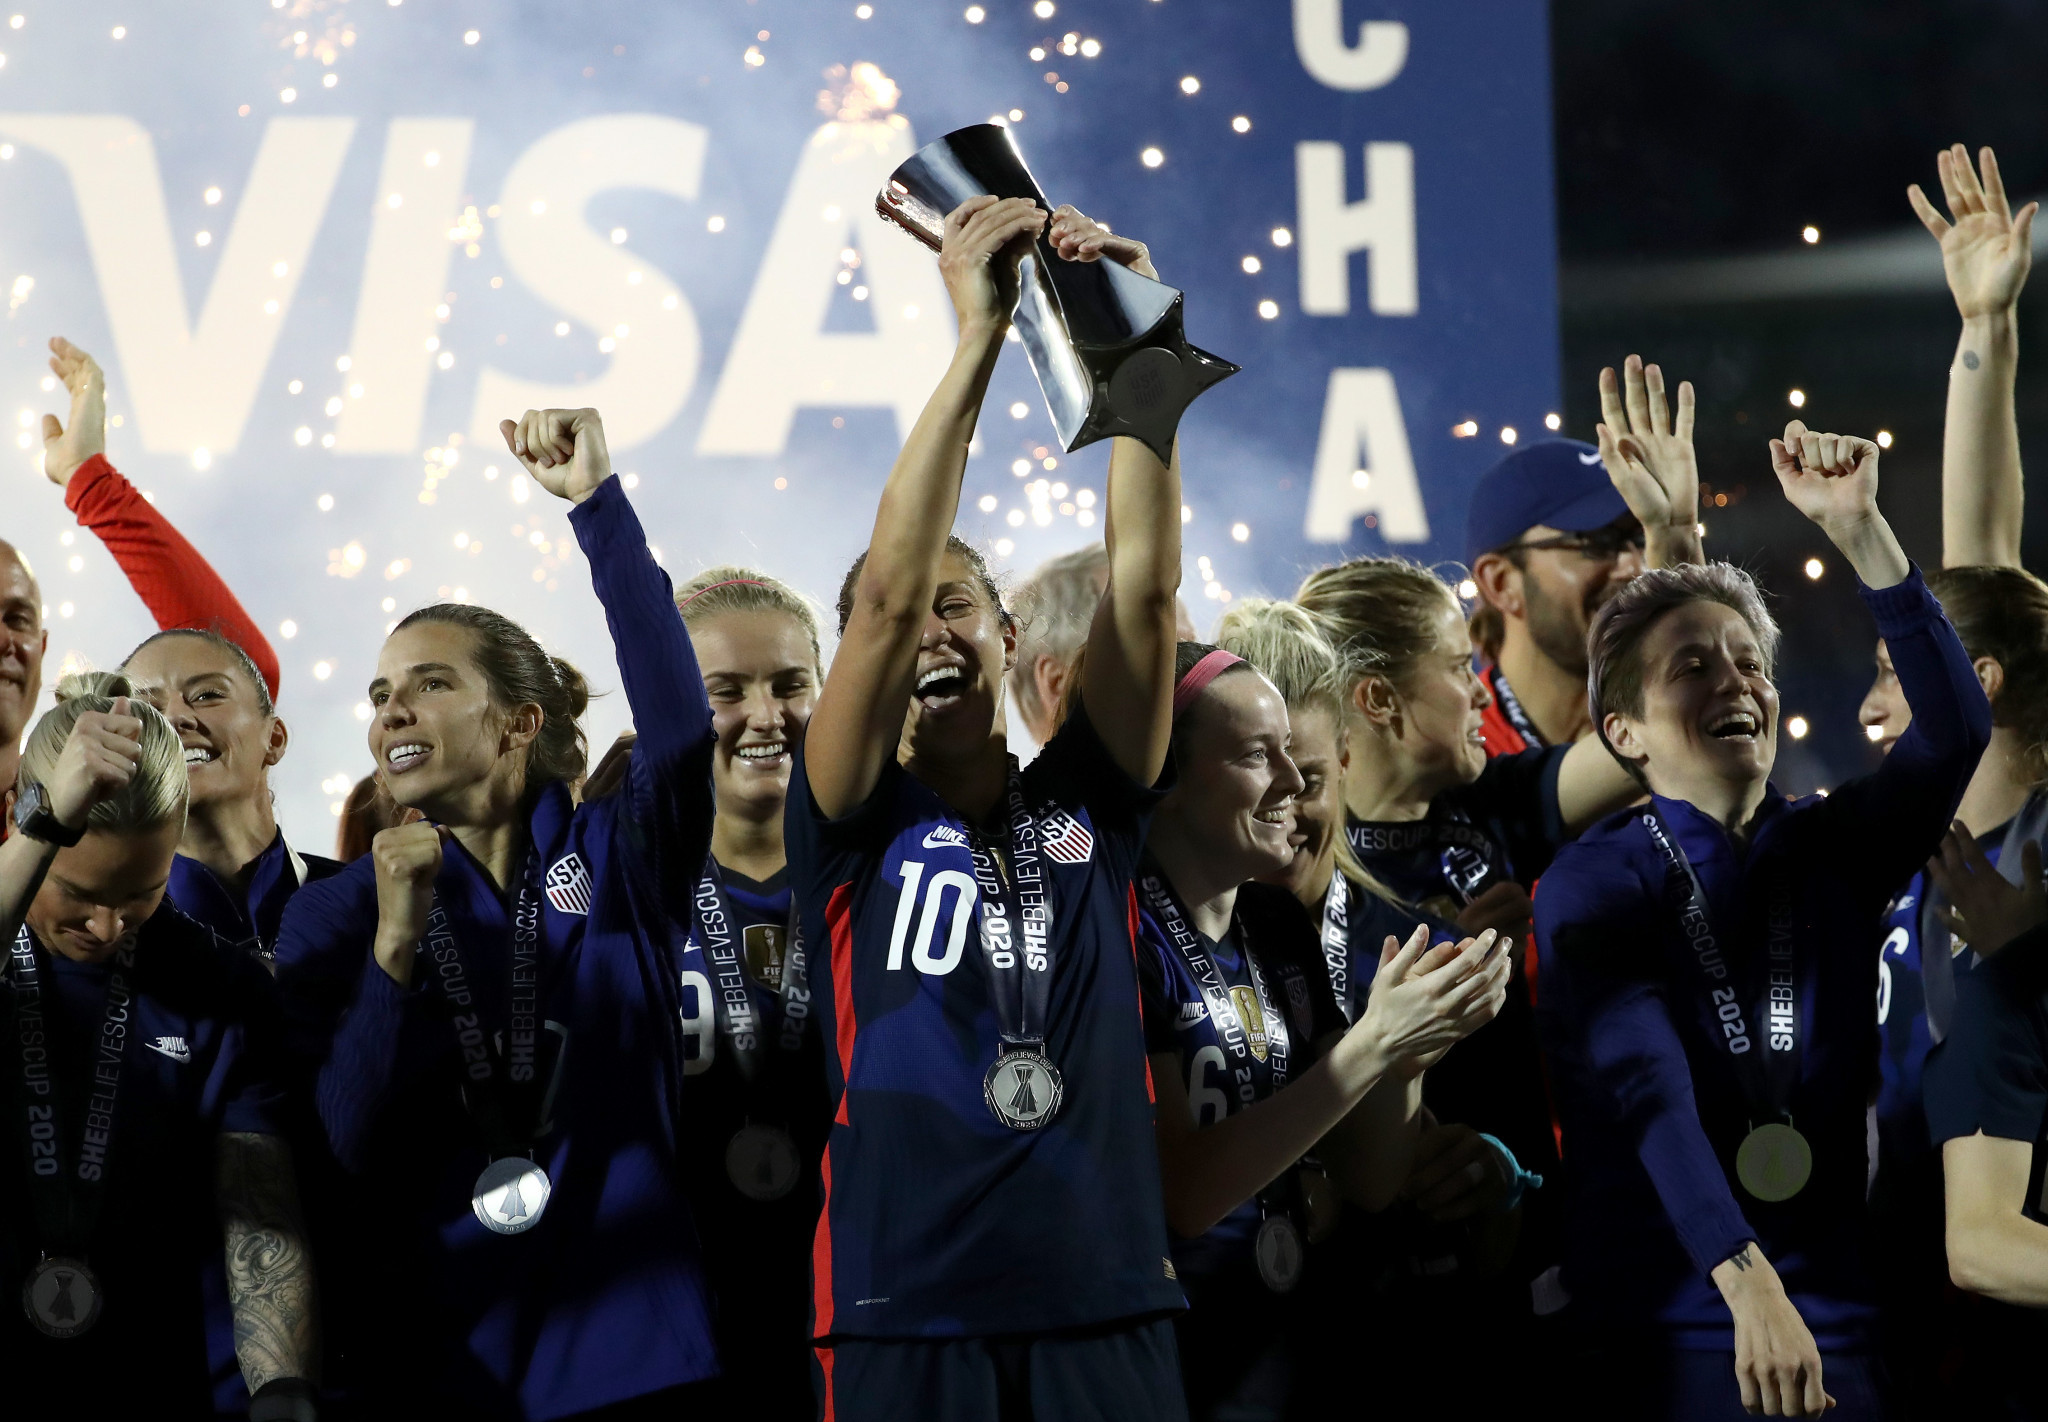 United States, Canada and Brazil to step up Olympic preparations at SheBelieves Cup